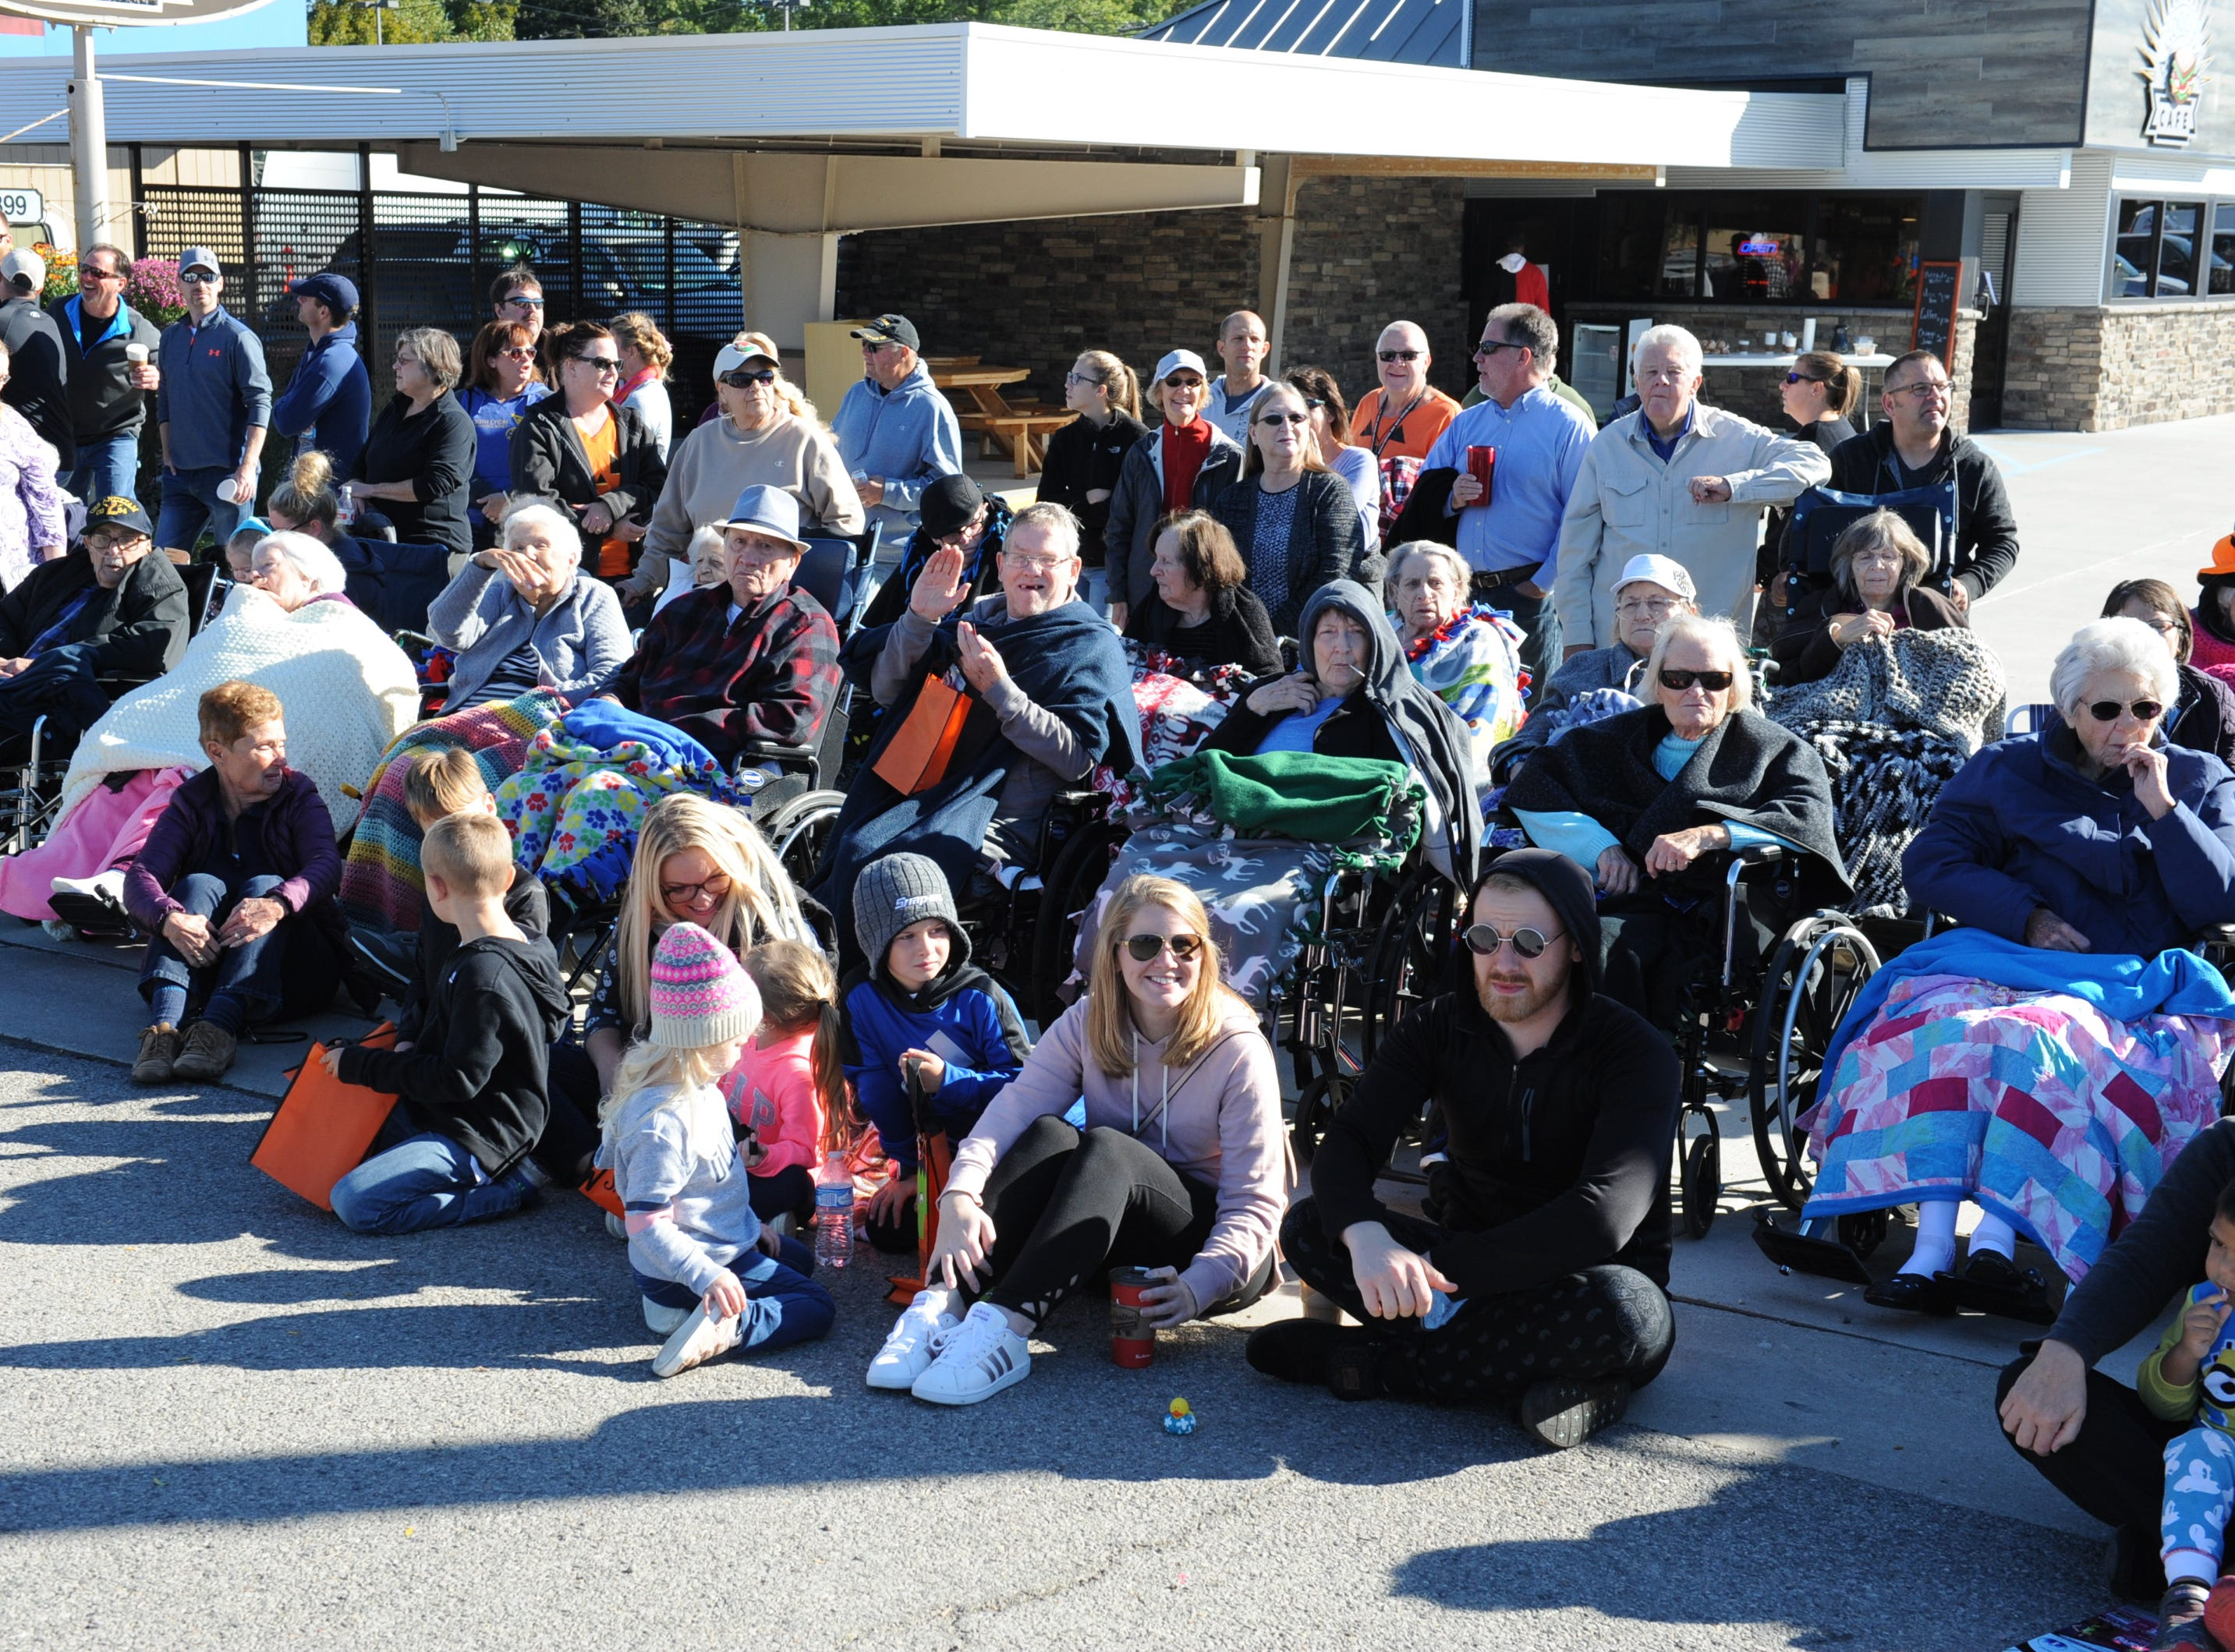 Thousands attended the annual Pumpkin Parade held in South Lyon.